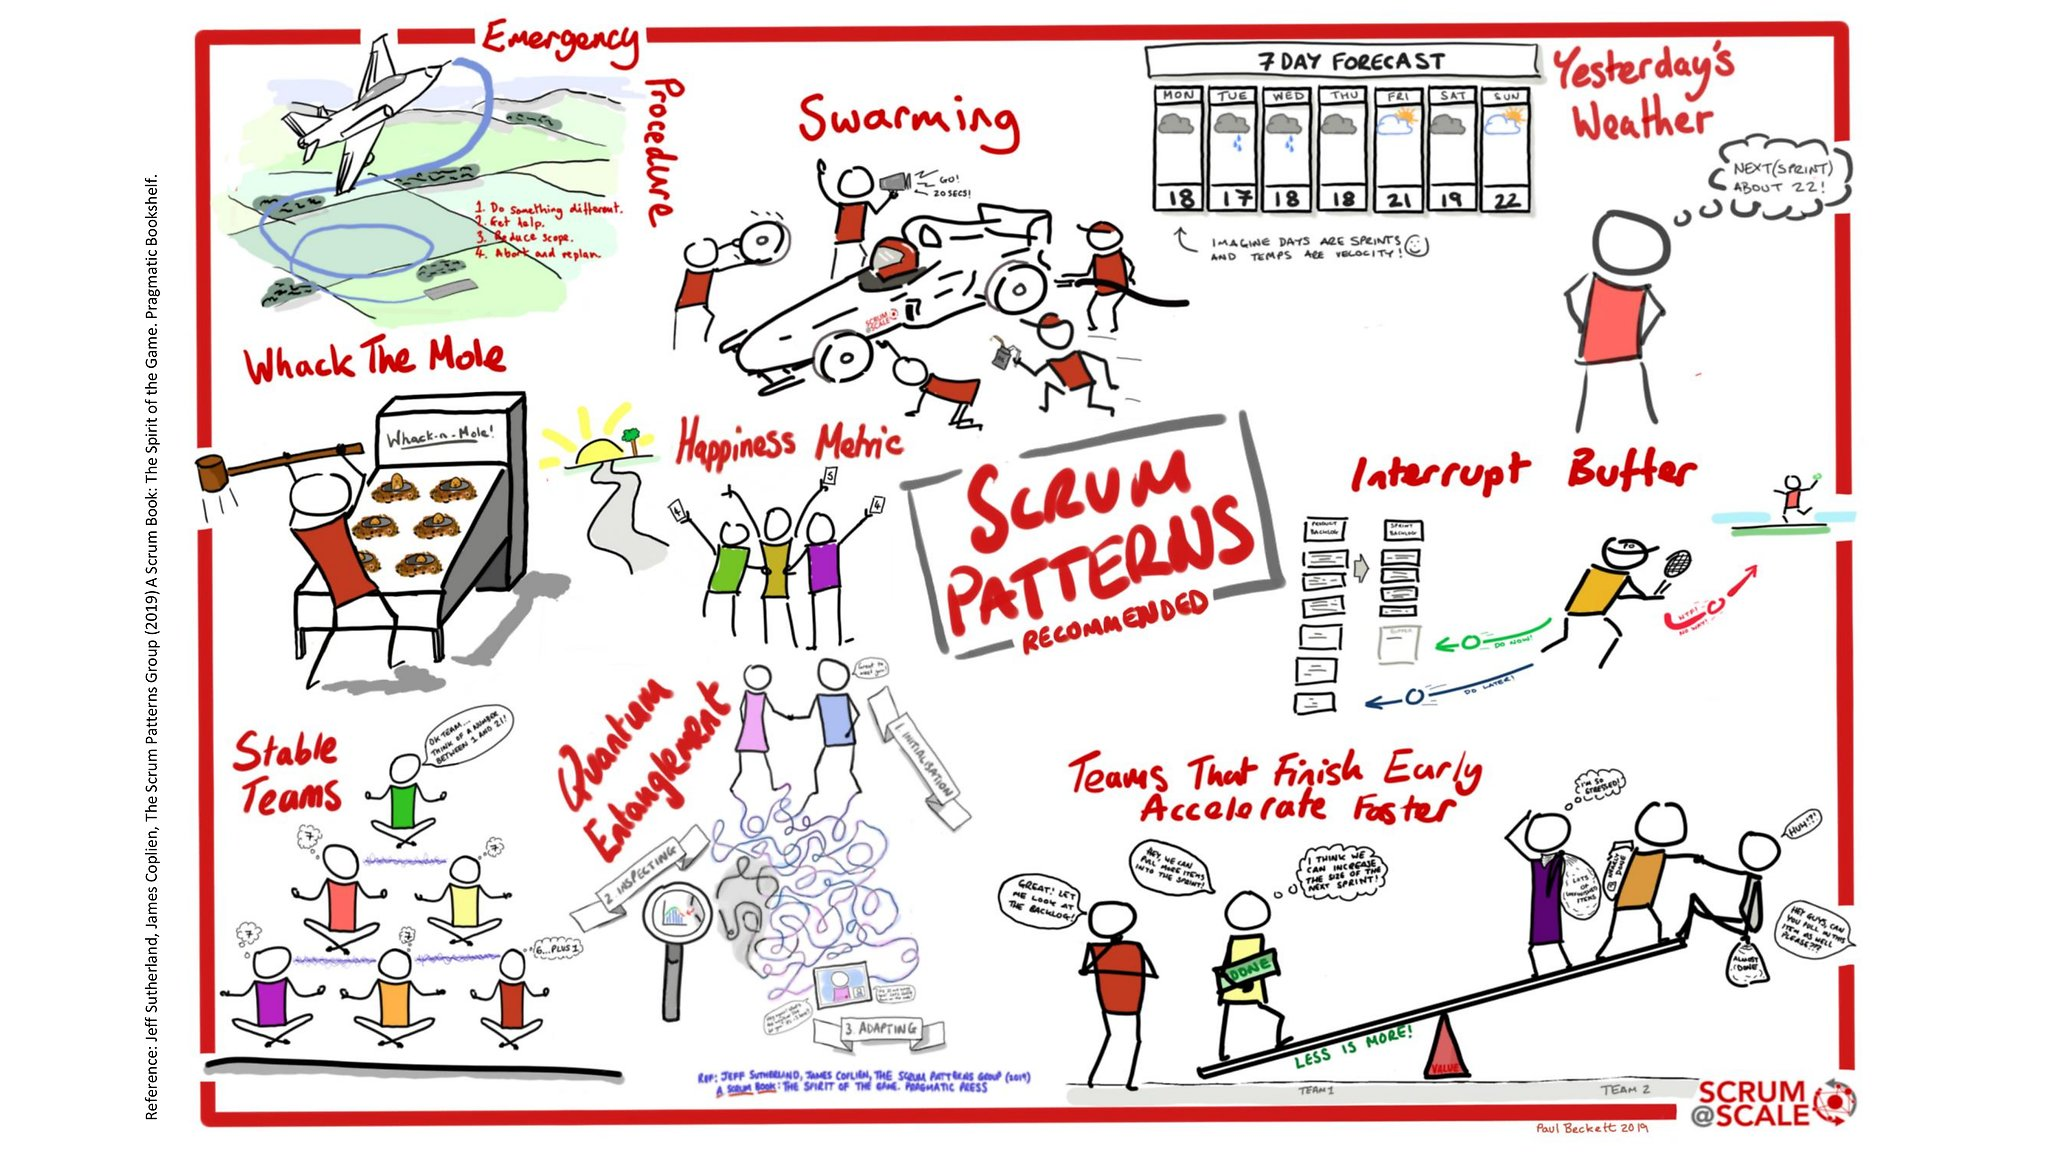 Recommended Scrum Patterns - Scrum@Scale